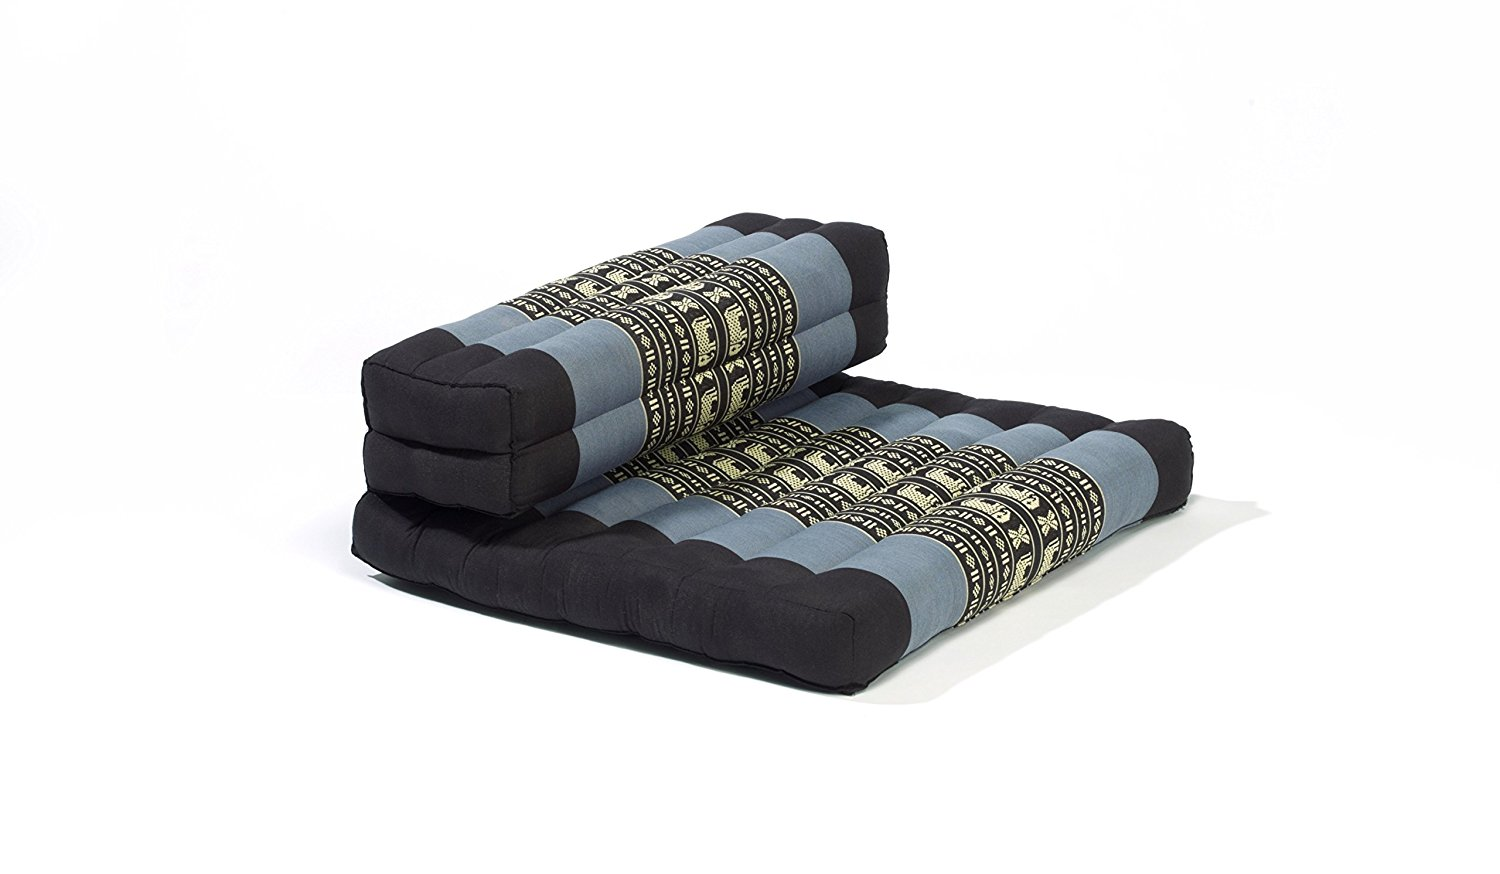 My Zen Home Dhyana Meditation Cushion Blue-Black